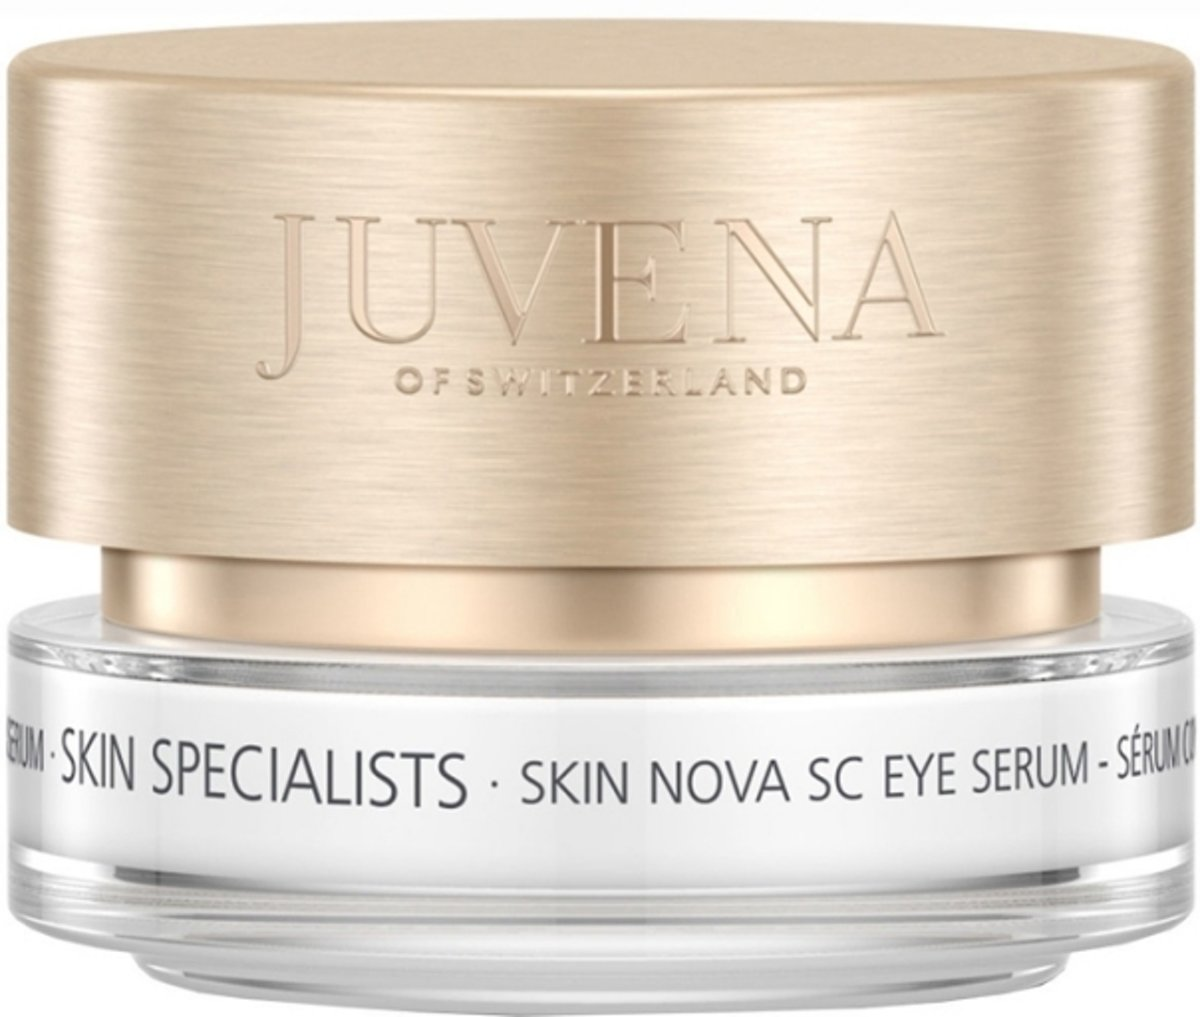 Juvena Skin Specialists Skin Nova SC Eye Serum Oogserum 15 ml